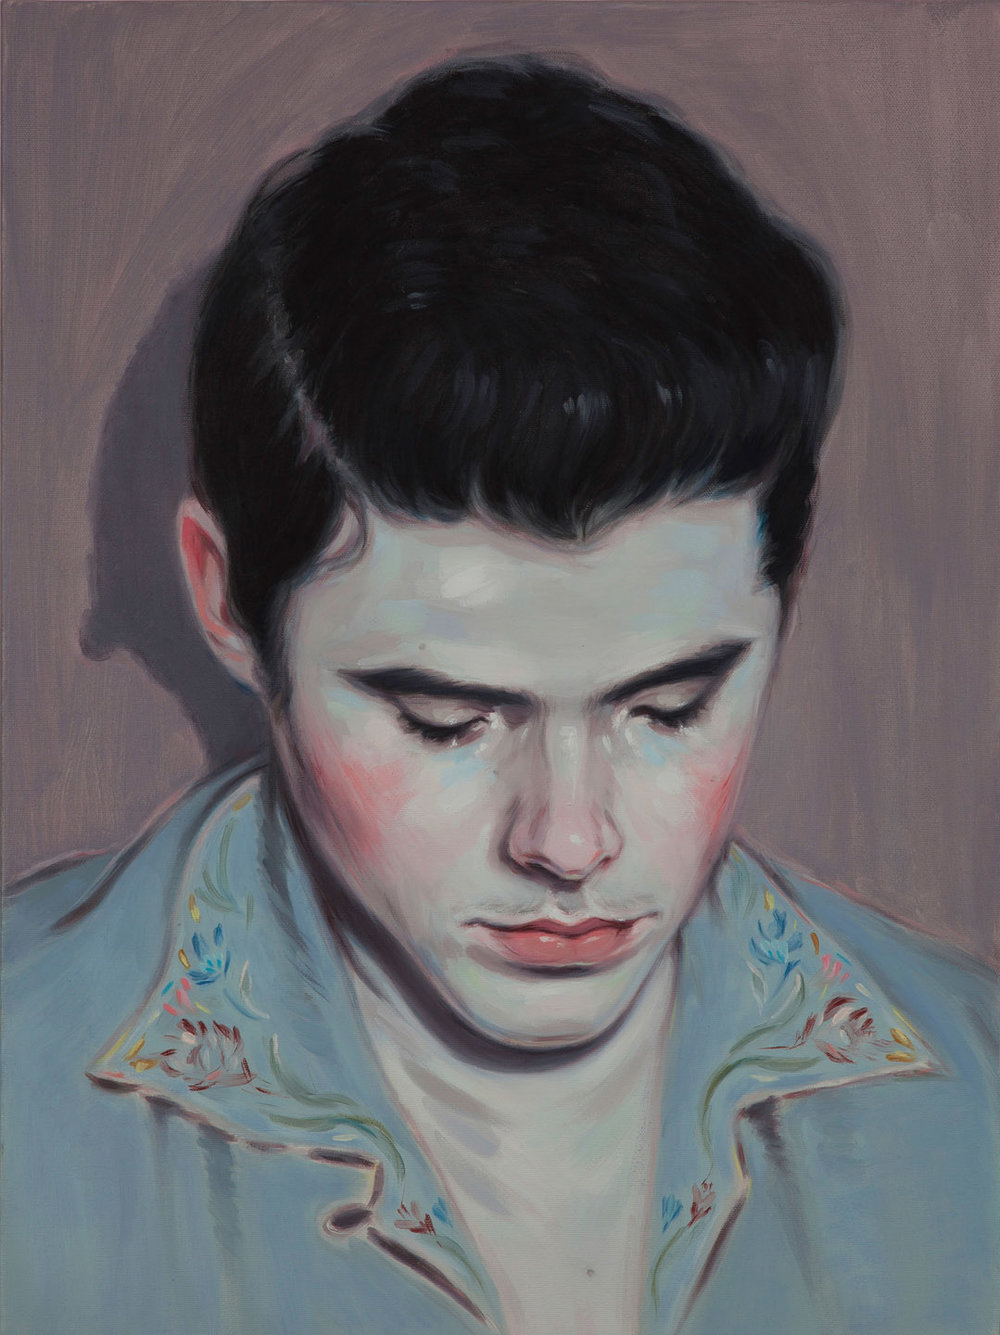 Kris Knight, Offstage (Big Head), 2015, oil on canvas, 24 x 18 inches.